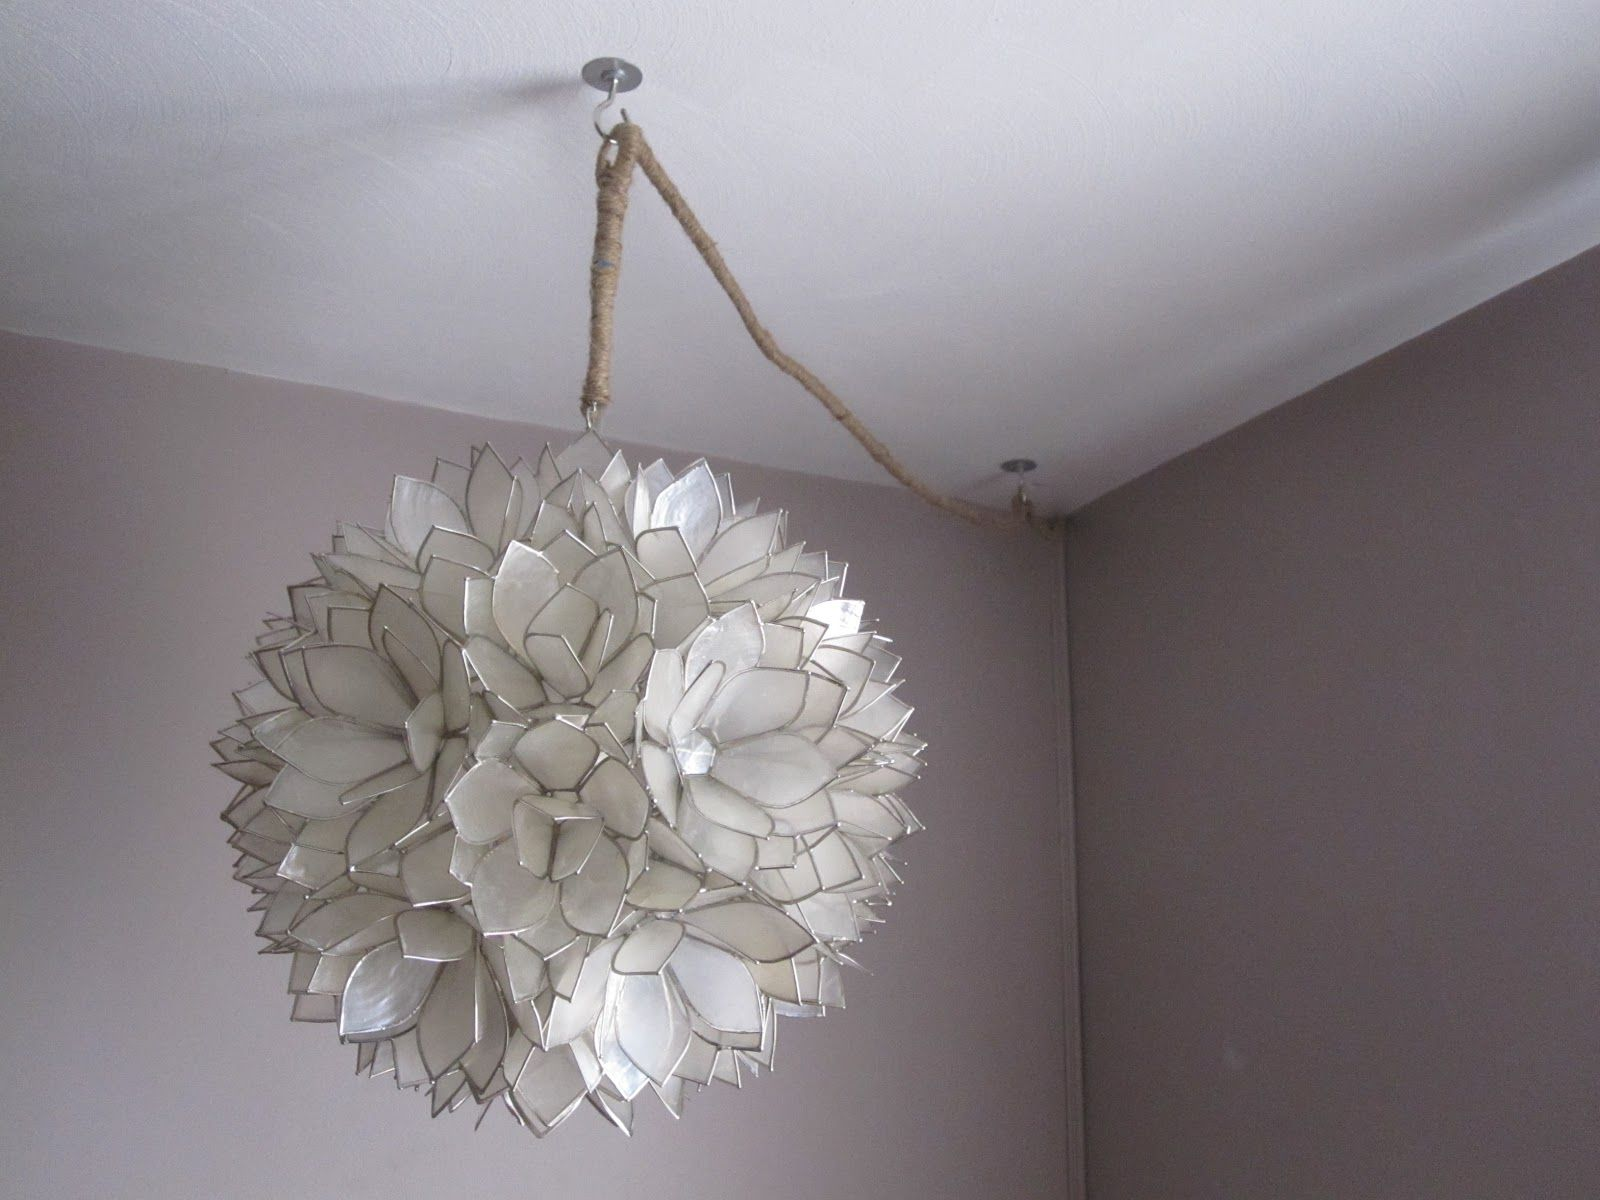 Using Molding To Hide Hanging Lamp Cord